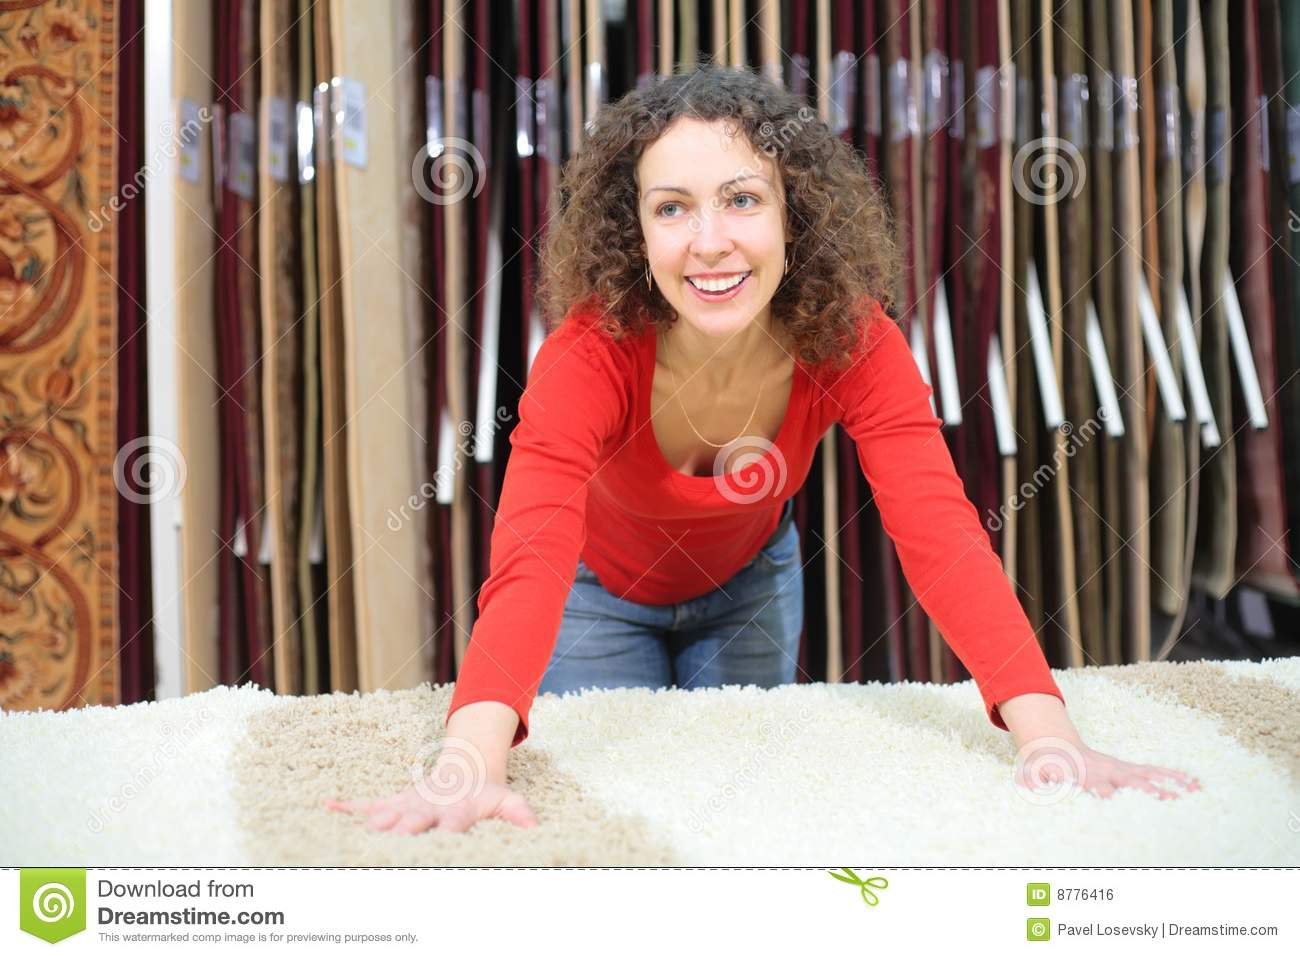 Young woman in shop with fluffy carpet